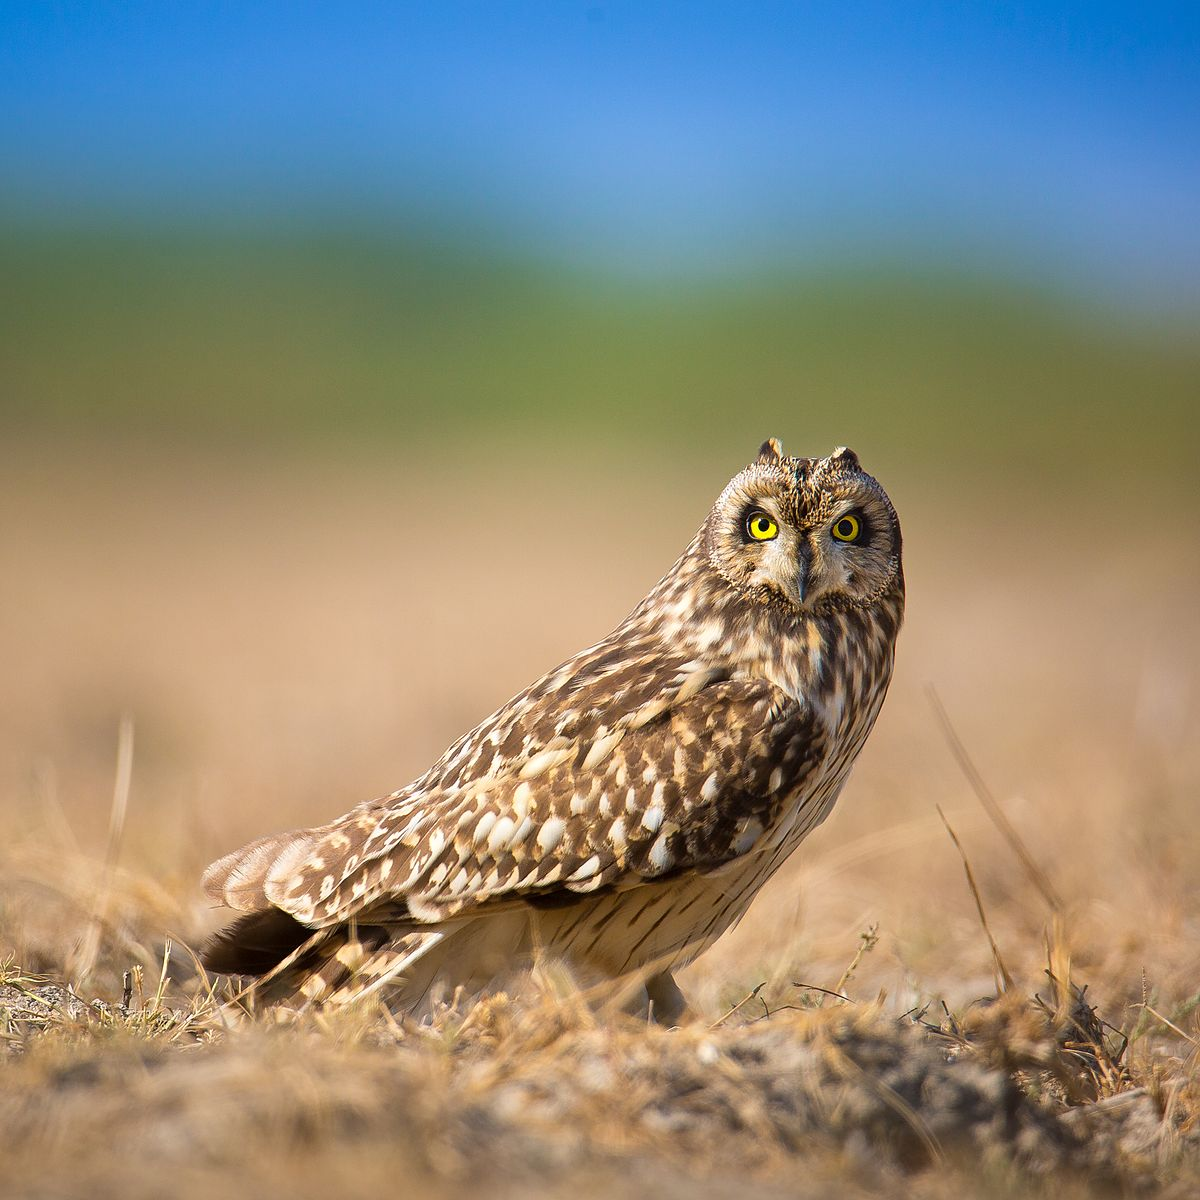 Short Eared Owl Wikipedia